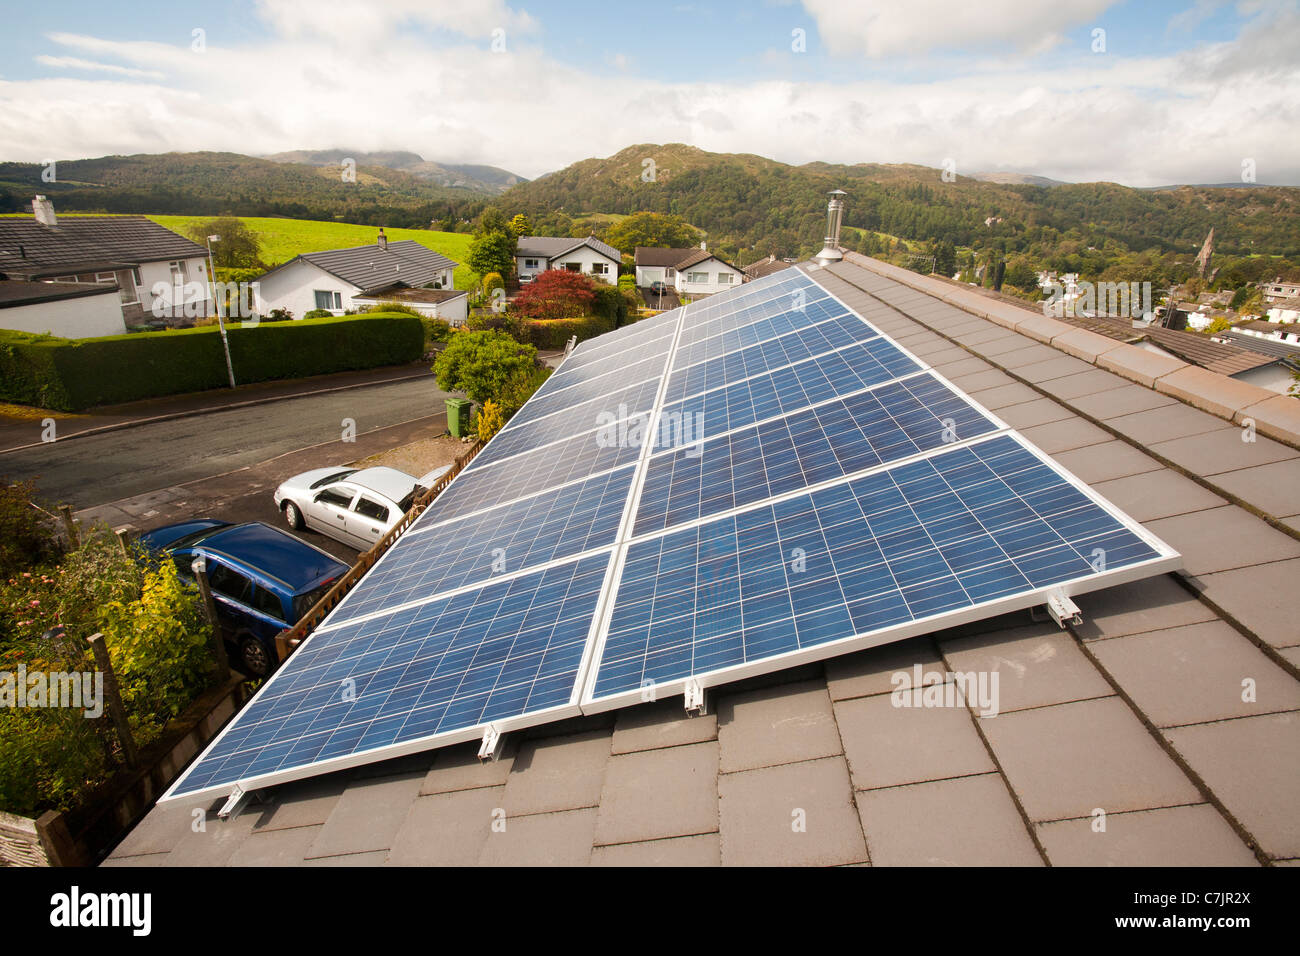 Solar voltaic panels on a house roof in Ambleside, Cumbria, UK. - Stock Image